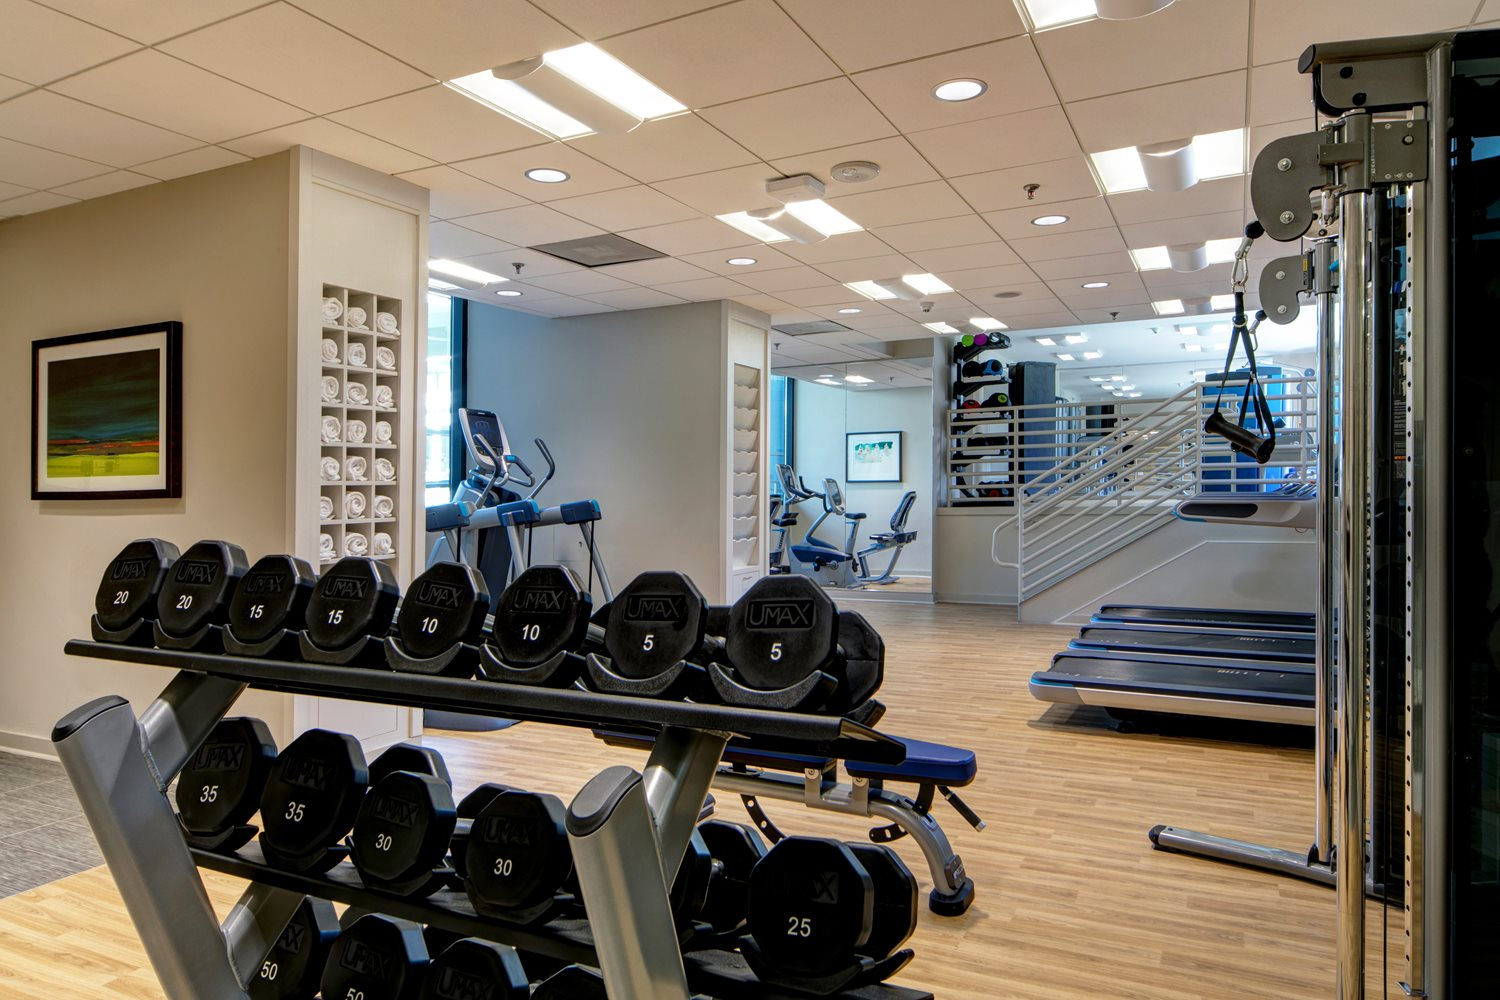 Hotel gym with weight rack, treadmills, and exercise machines